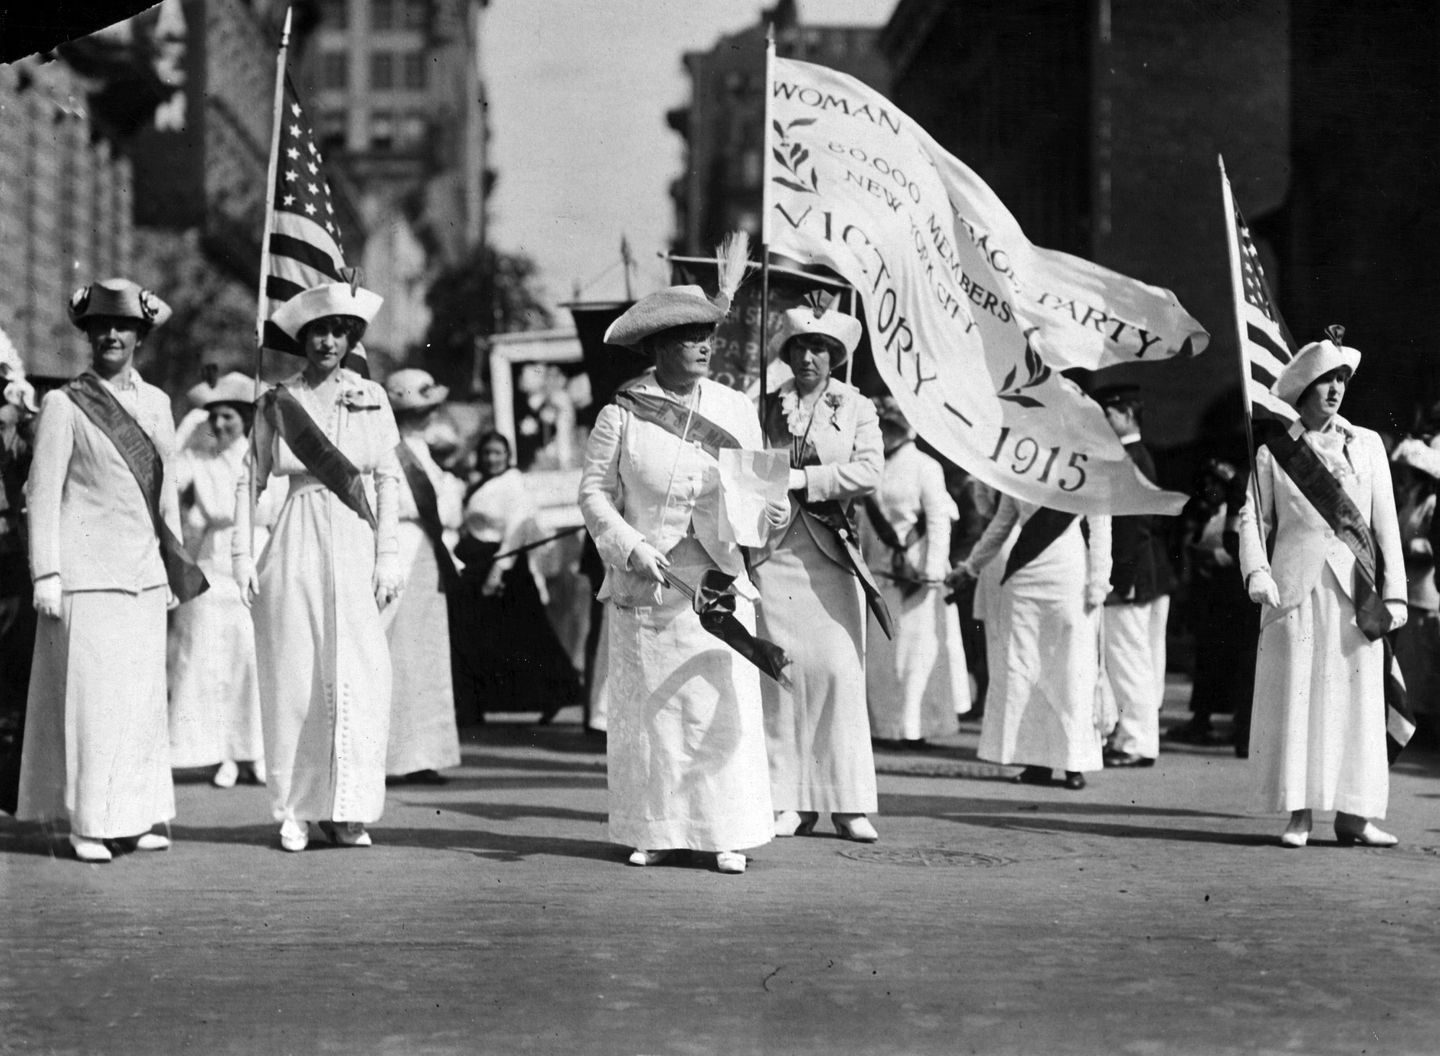 1915: From left to right, Mrs James Leeds Laidlaw, Mrs Albert Plimpton, Mrs A Hughston, Mrs Frank Stratton and Helen Rich lead the Manhattan Delegation on a Woman Suffrage Party parade through New York.